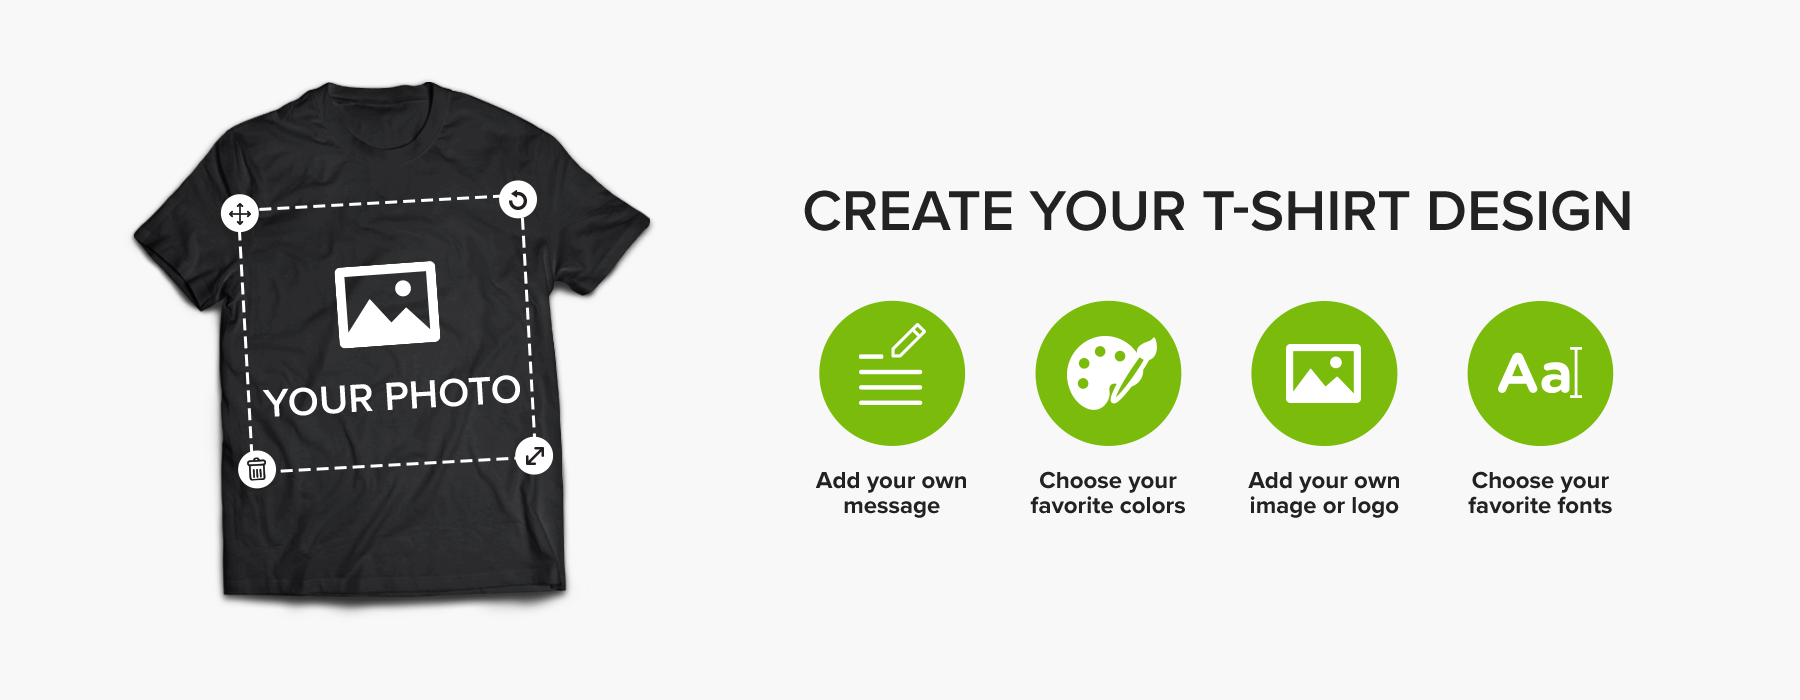 Personalize your t-shirt